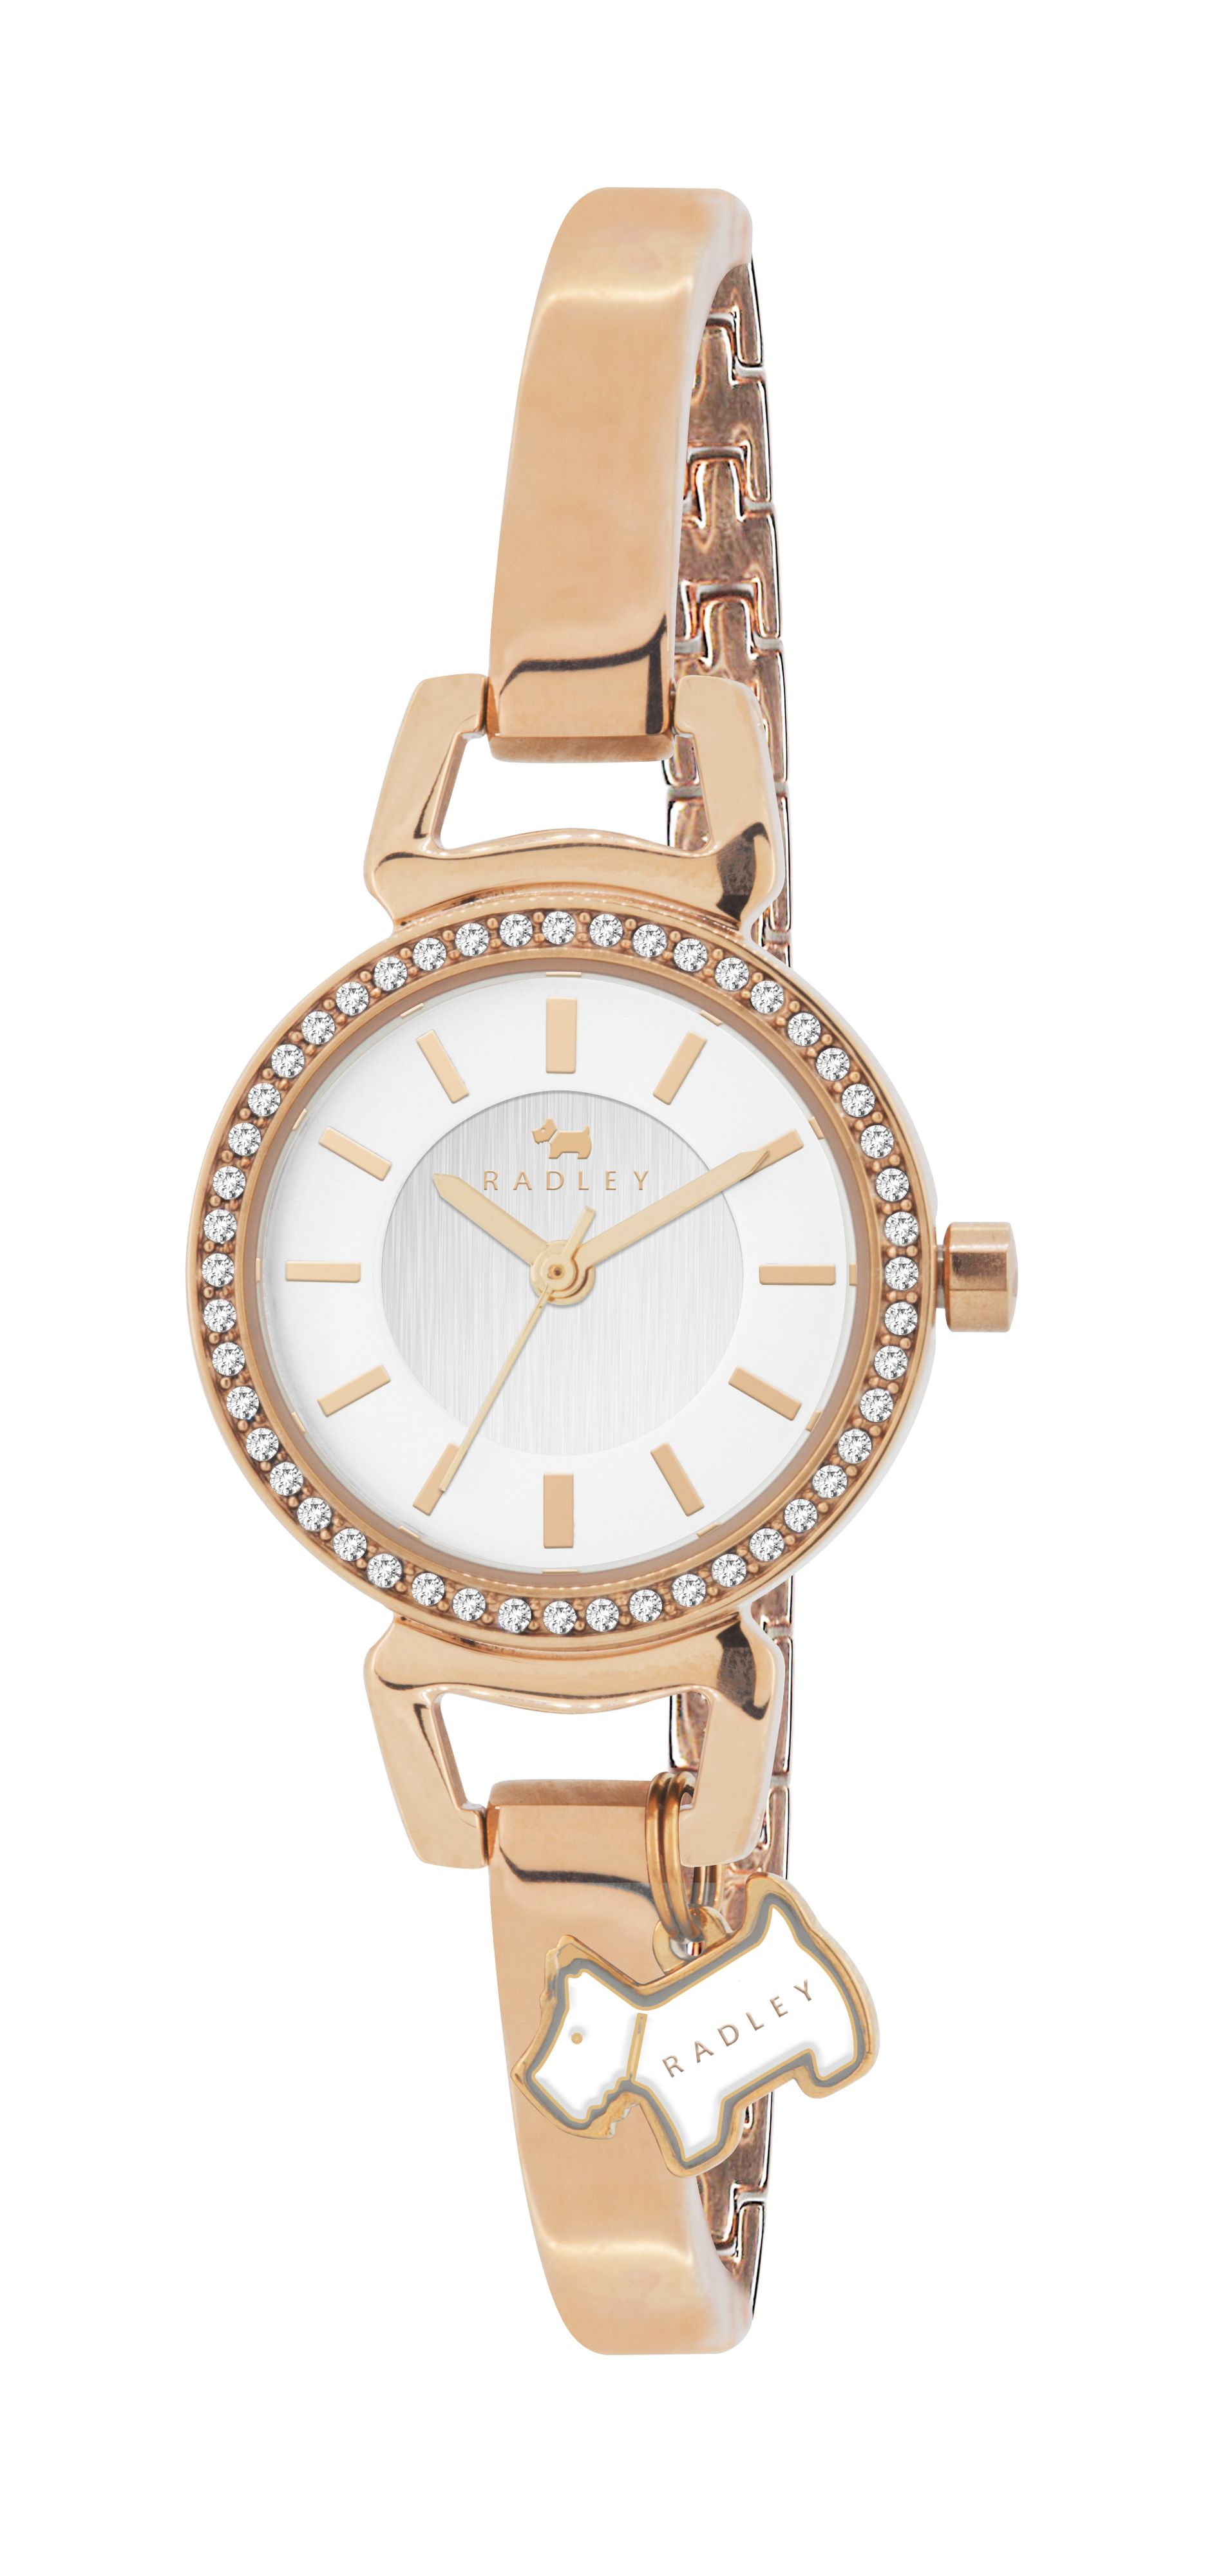 RY4154 rose gold plated ladies watch